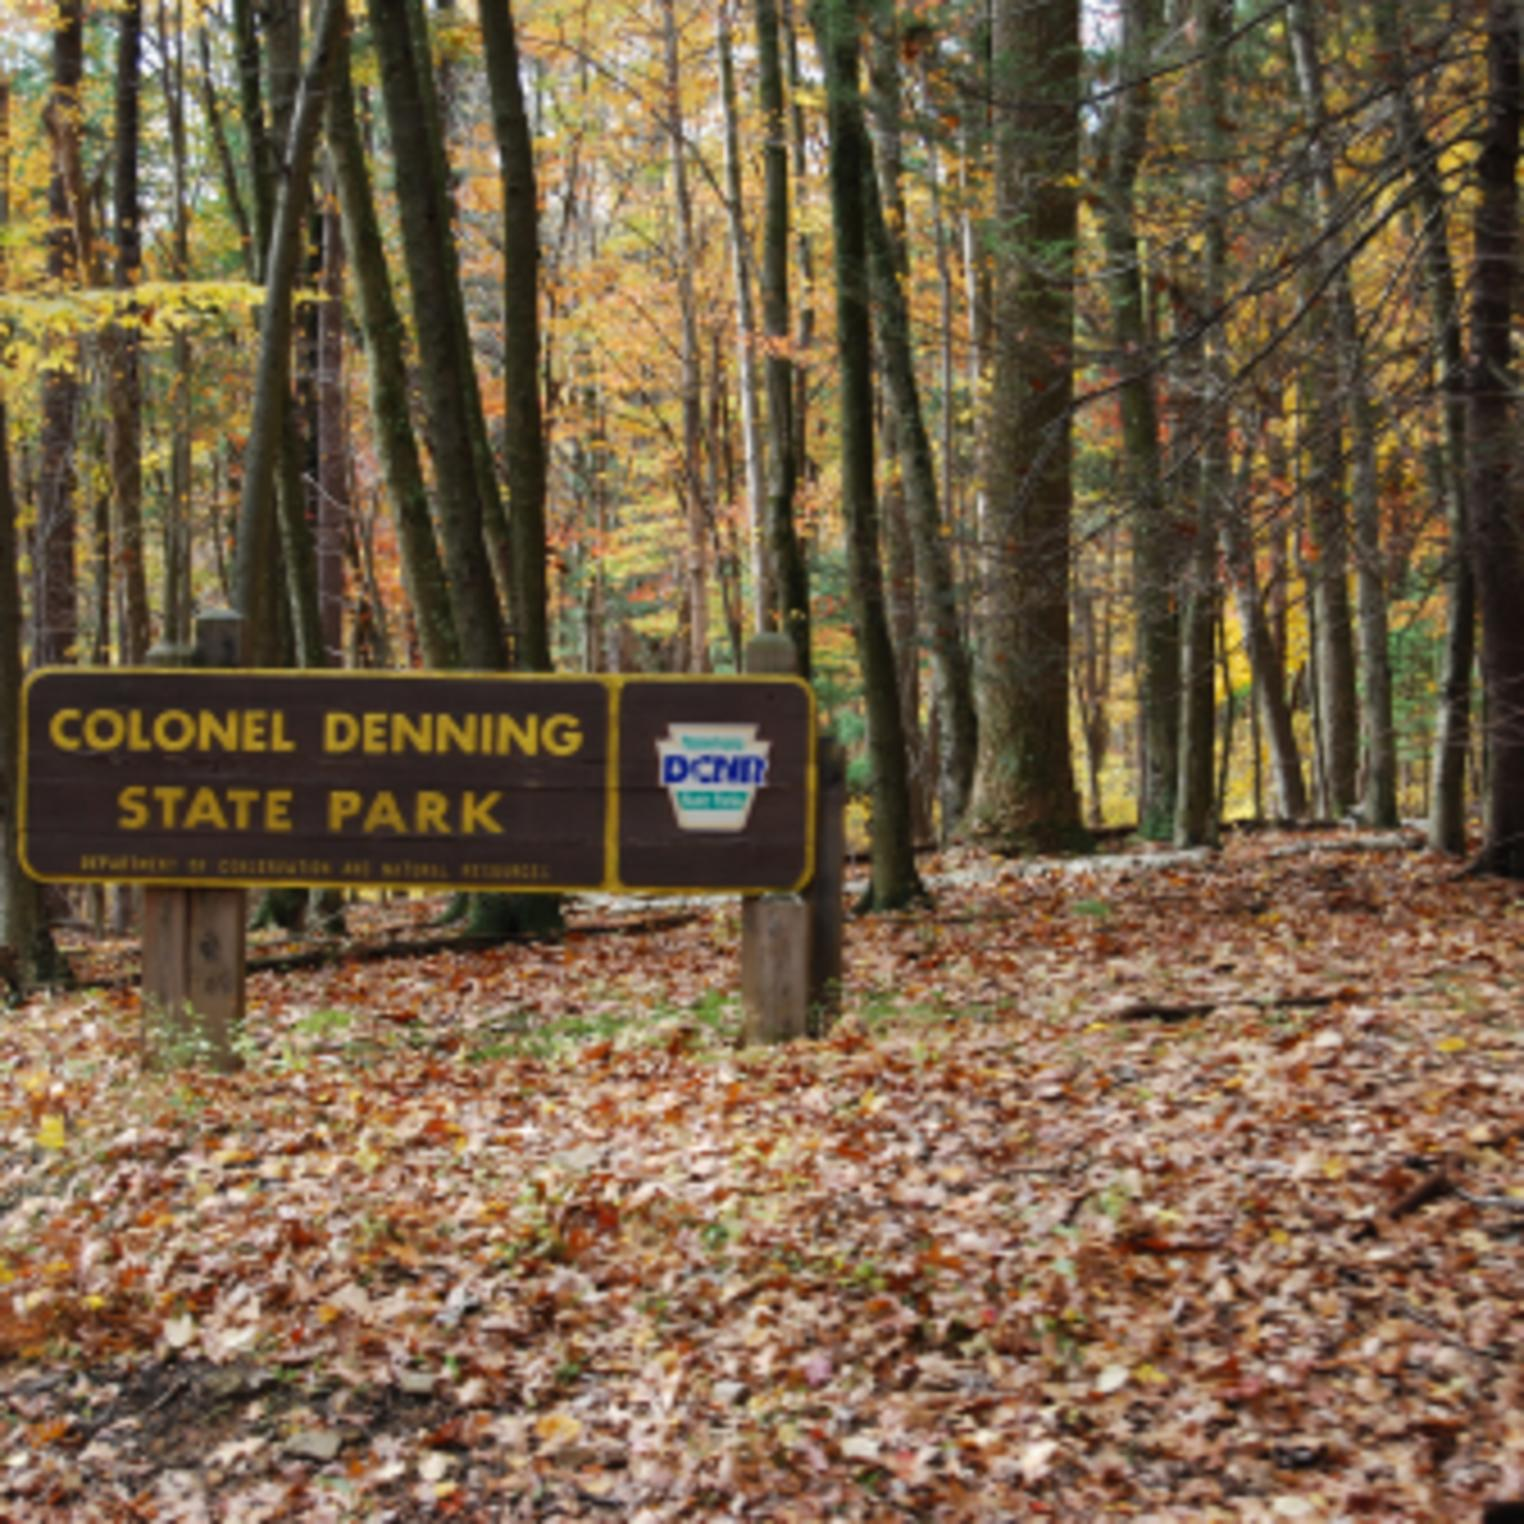 Colonel Denning State Park Sign